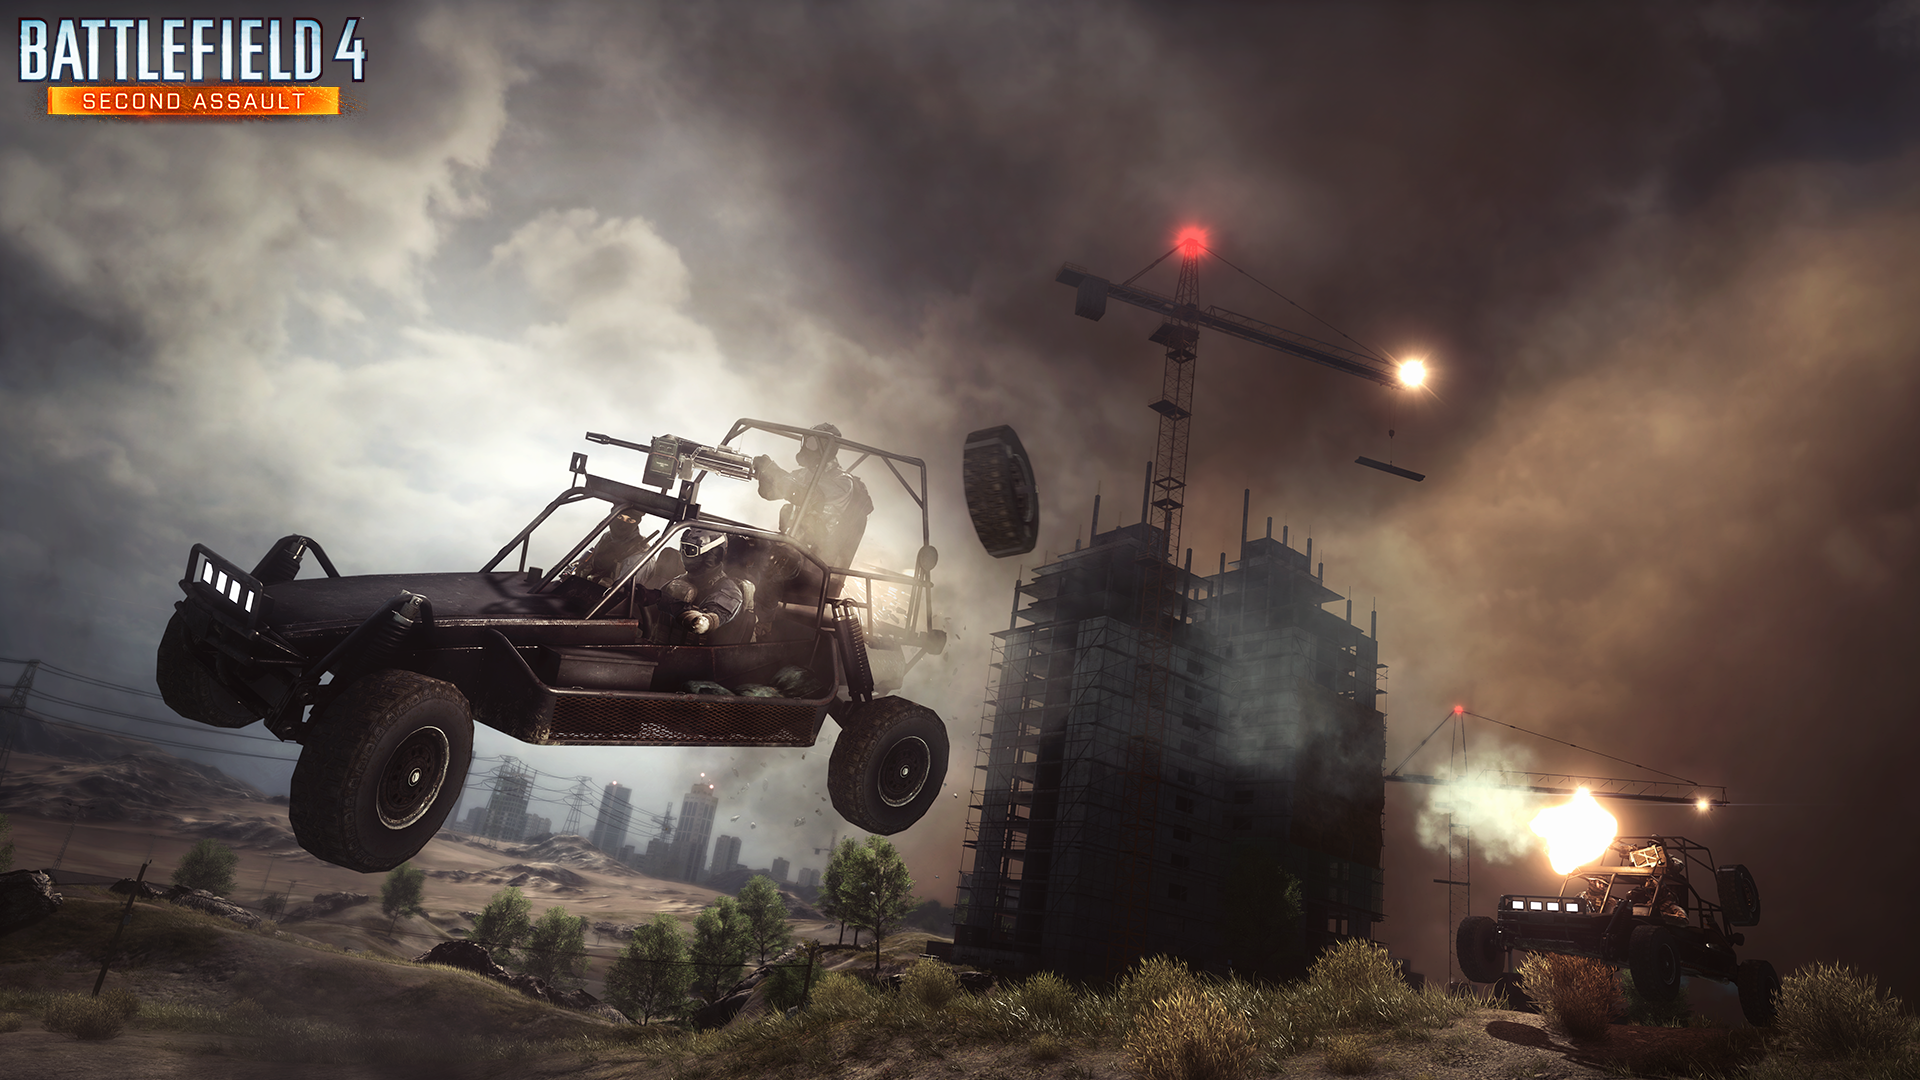 BF4 Second Assault Screen